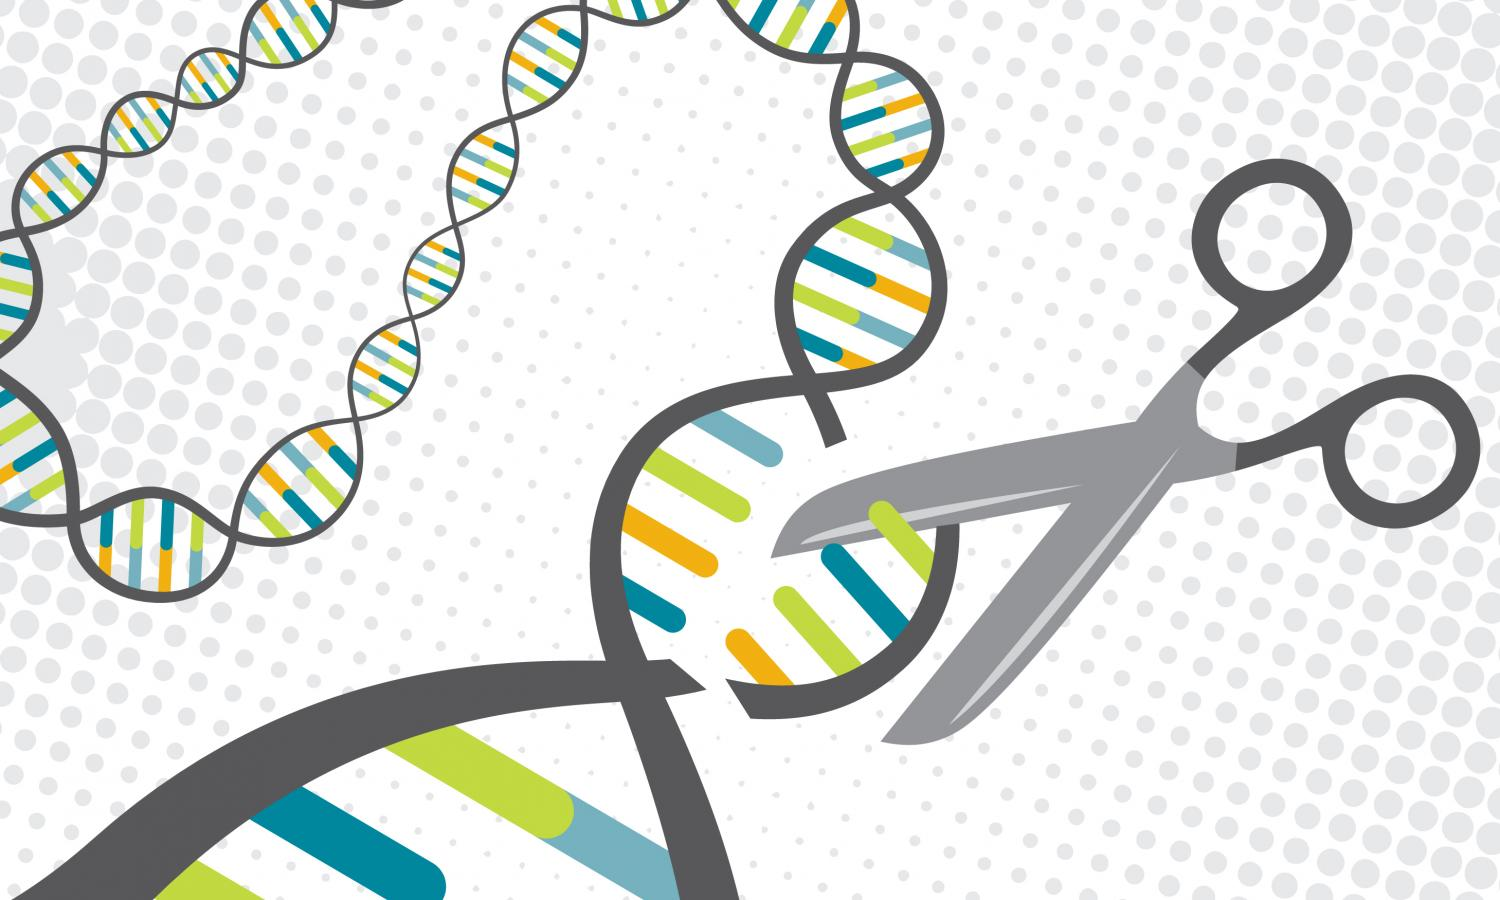 Genetic editing is a mind-blowing scientific breakthrough